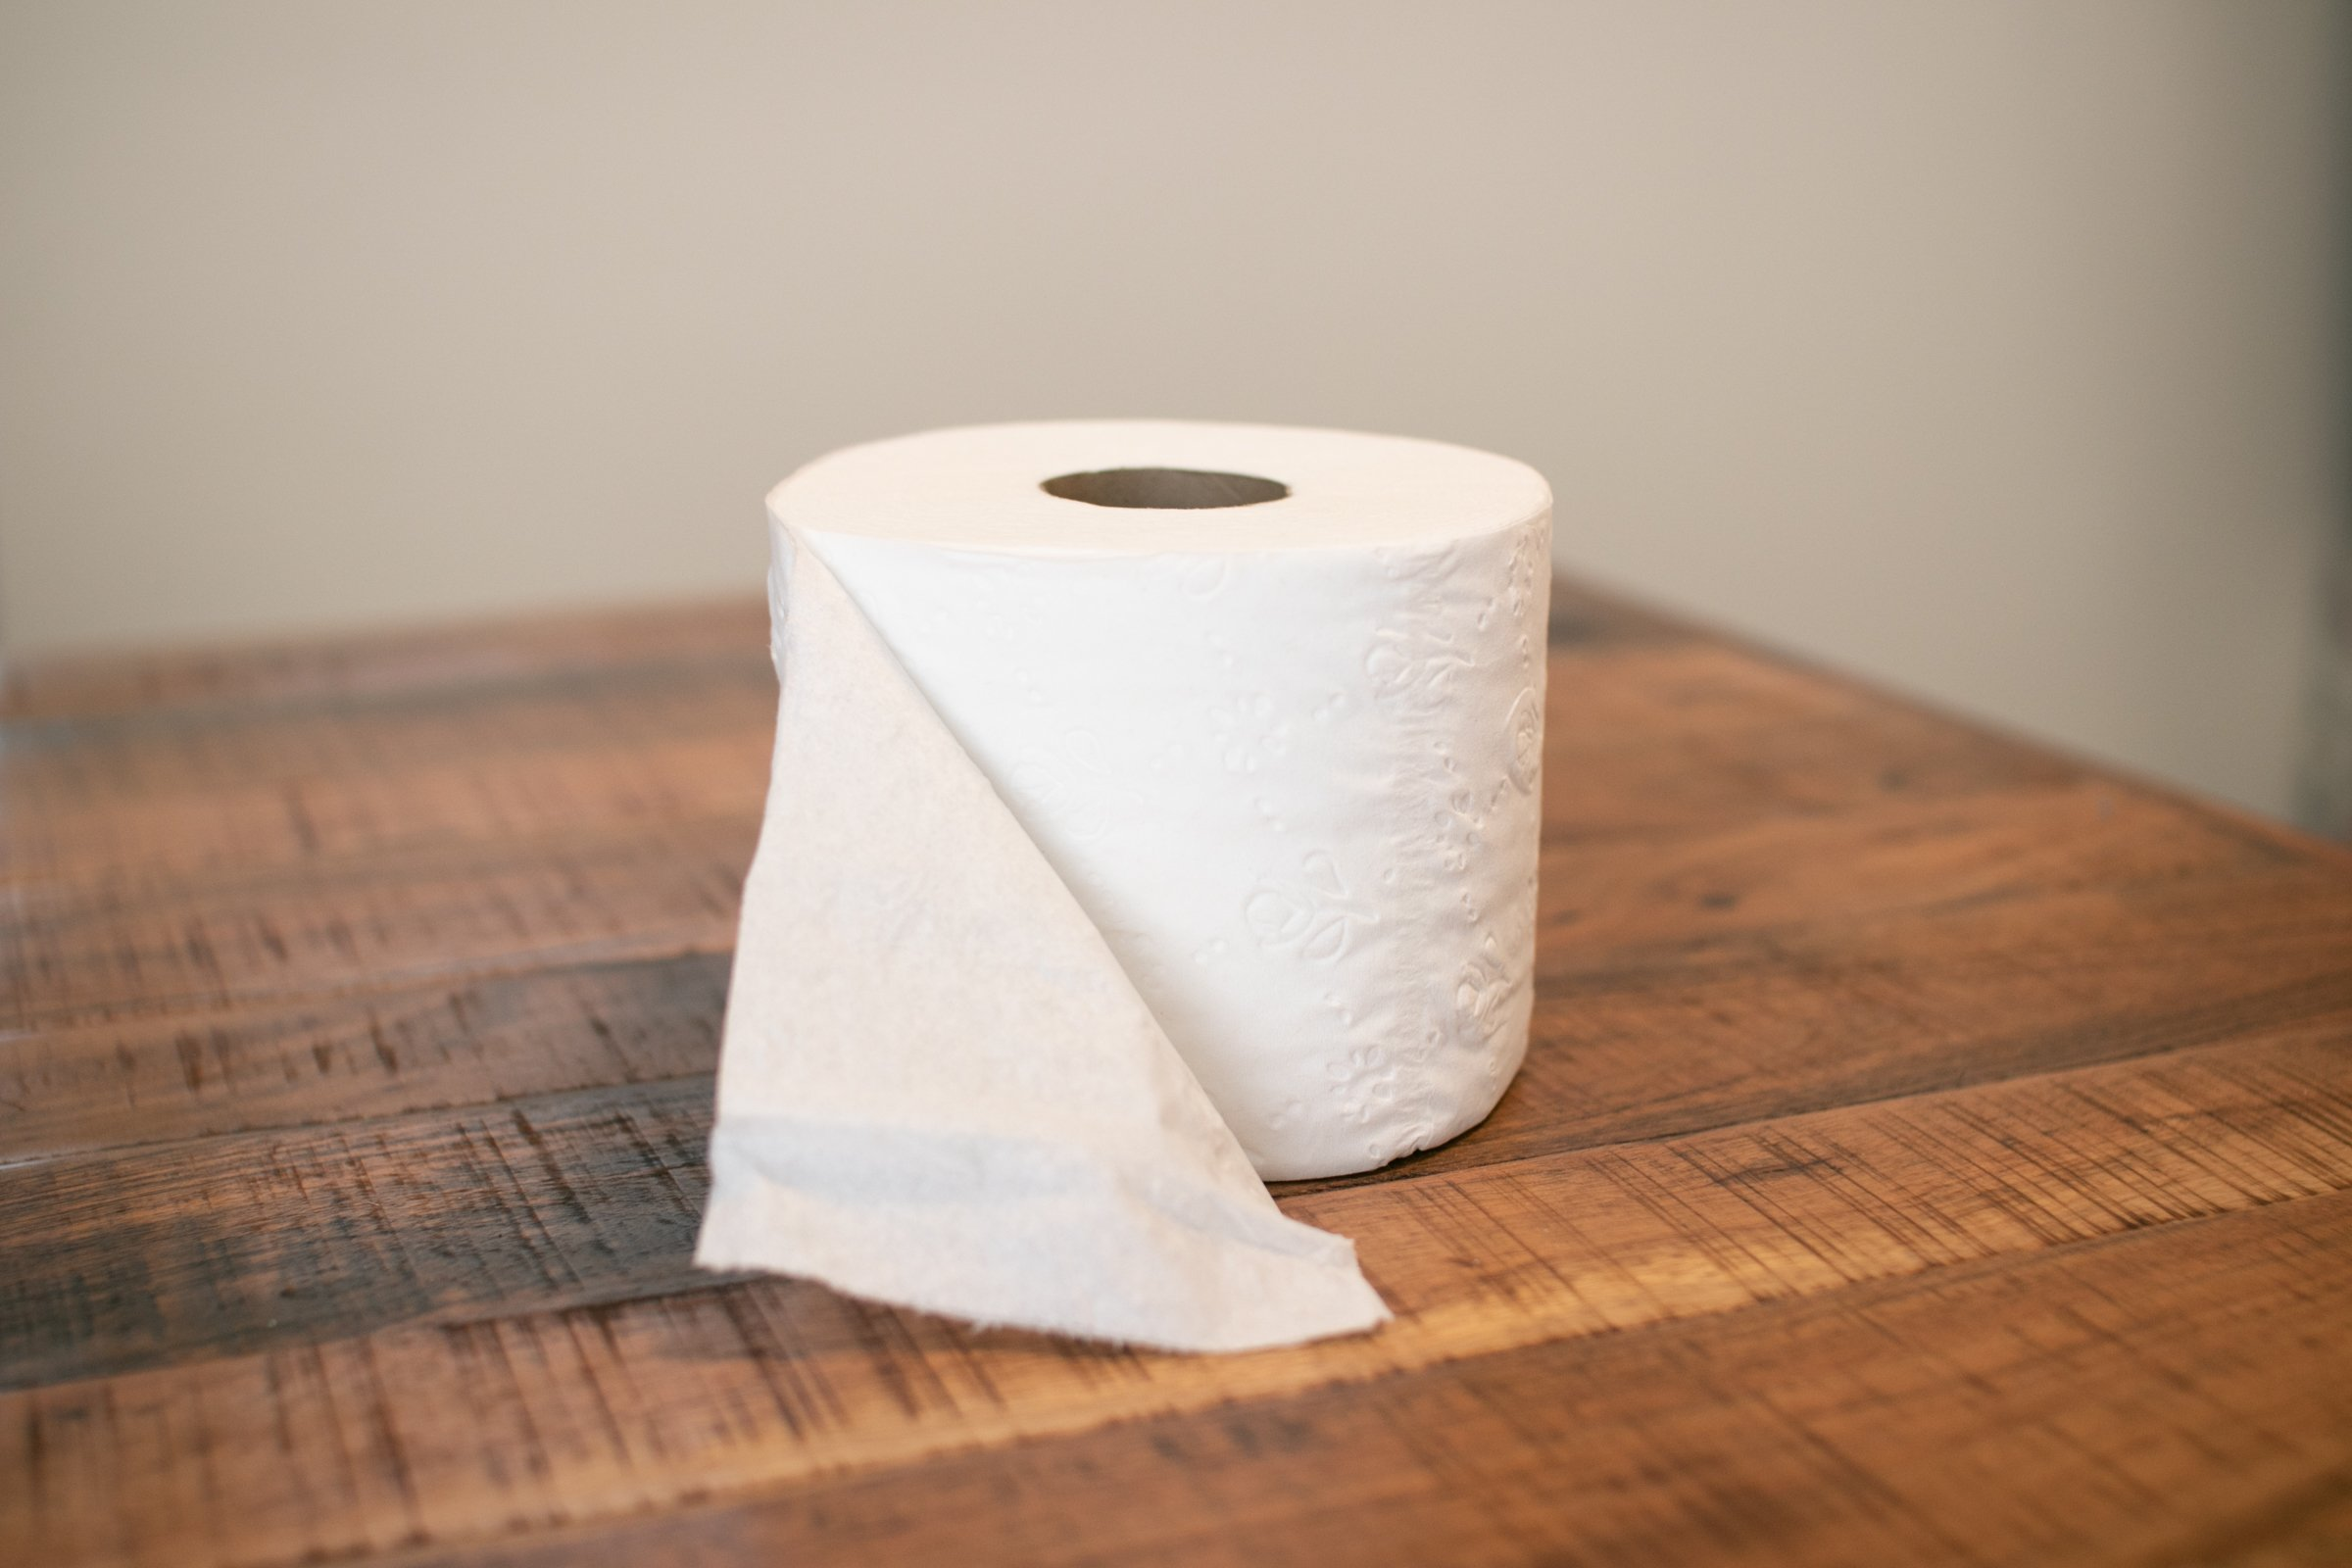 Open Toilet Paper Roll On Wooden Surface